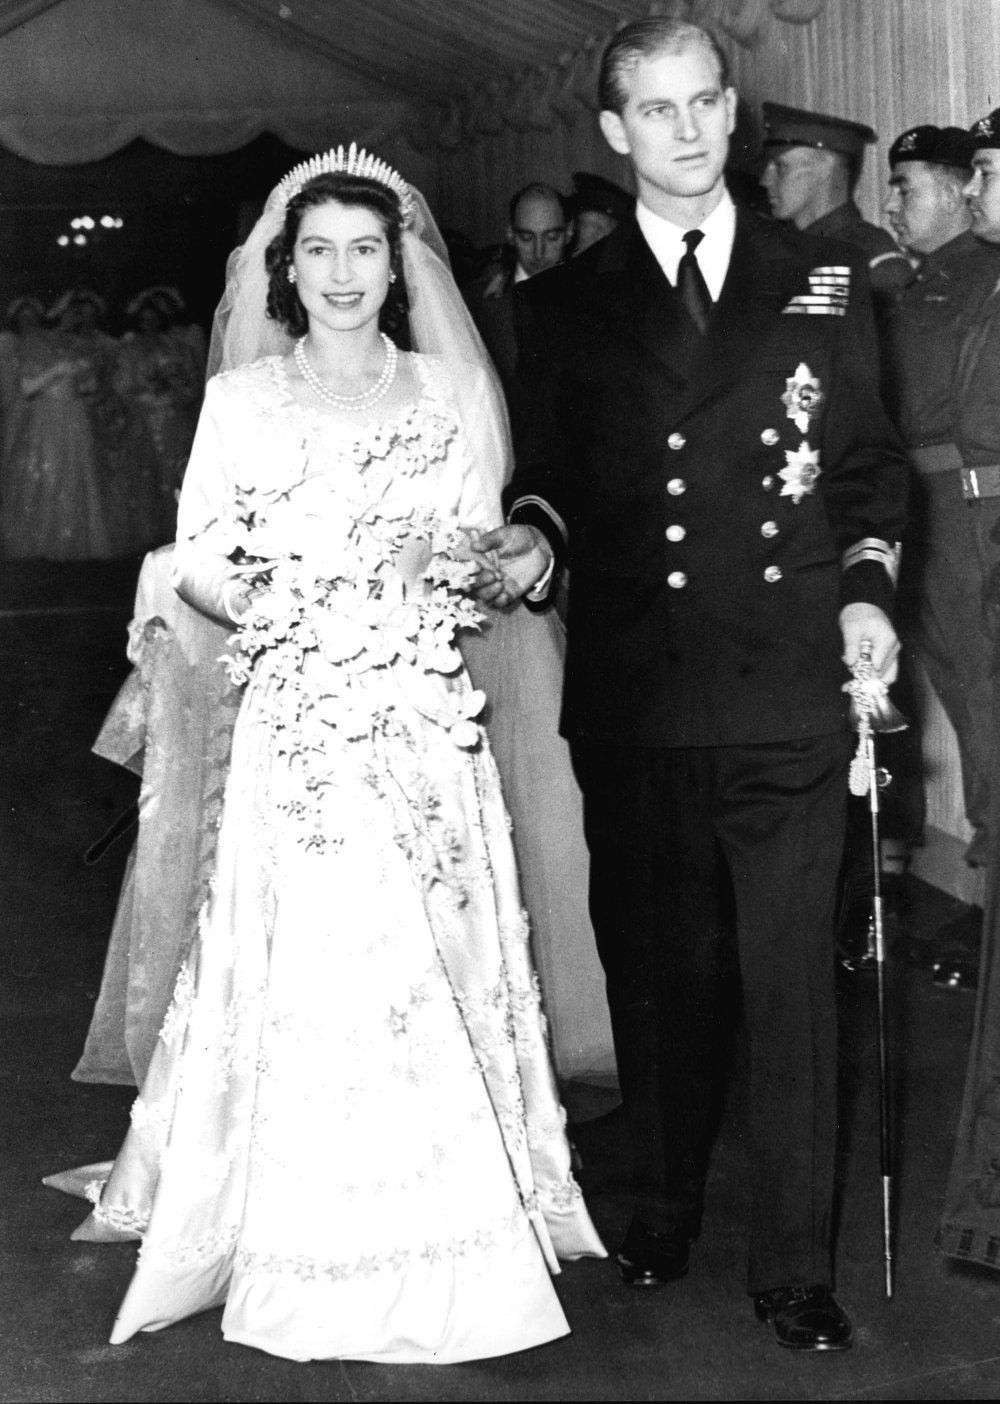 Click on the image to enlarge. ROYAL WEDDING: Queen Elizabeth and Prince Philip were married on November 20, 1947.